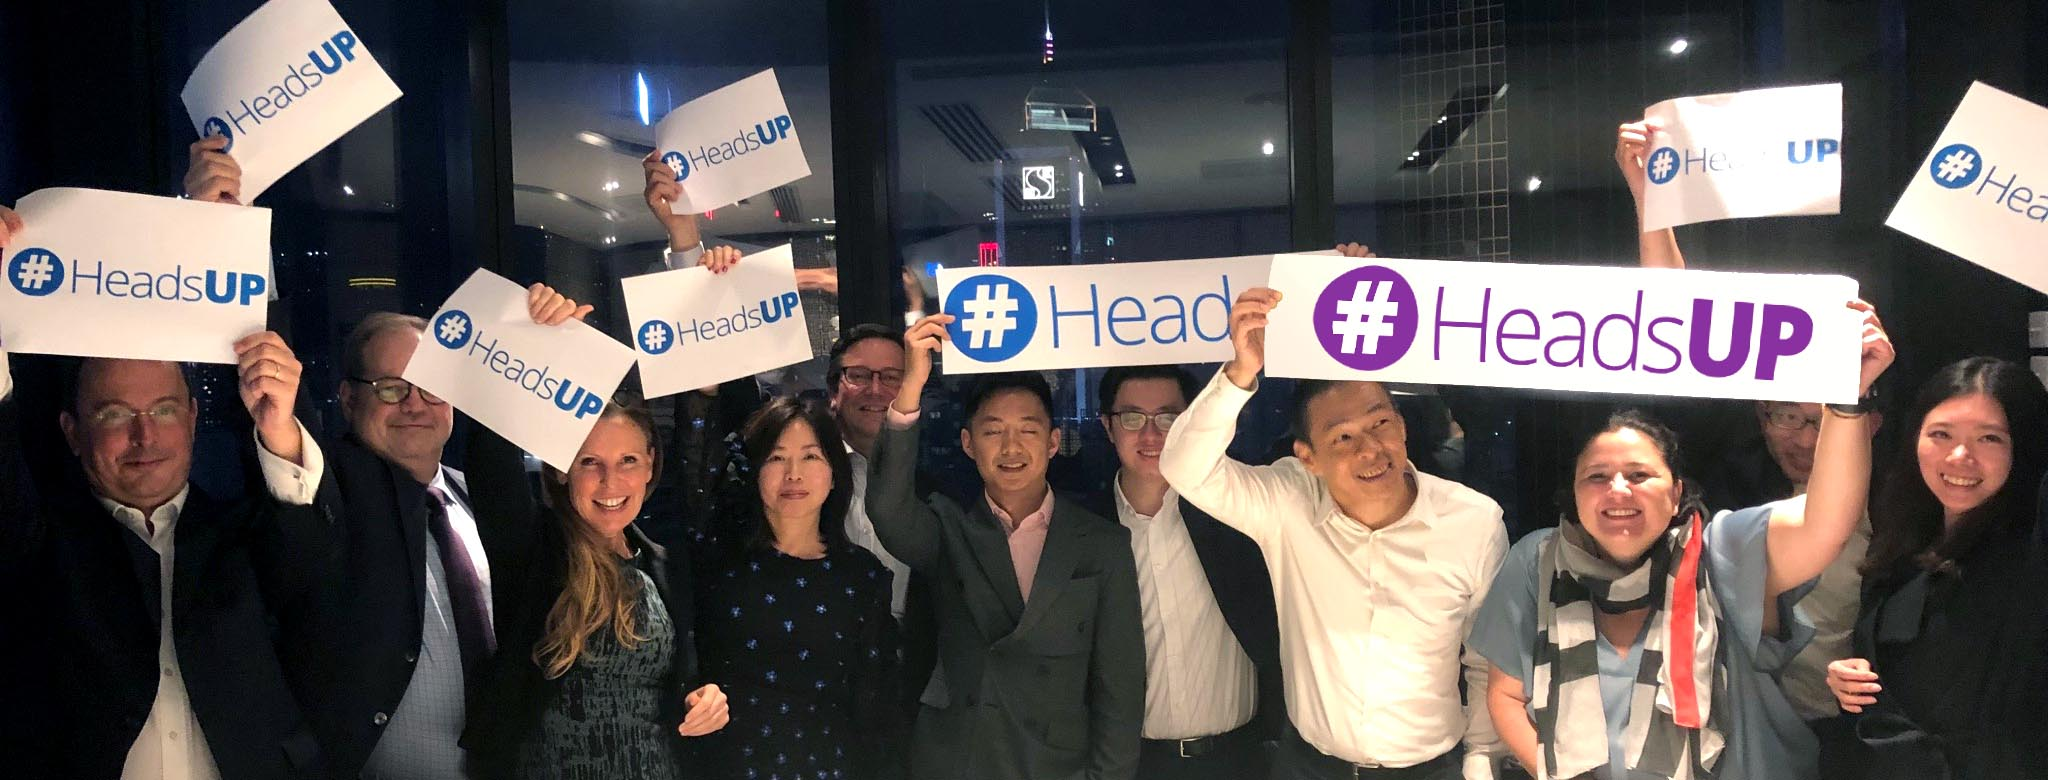 headsup_group